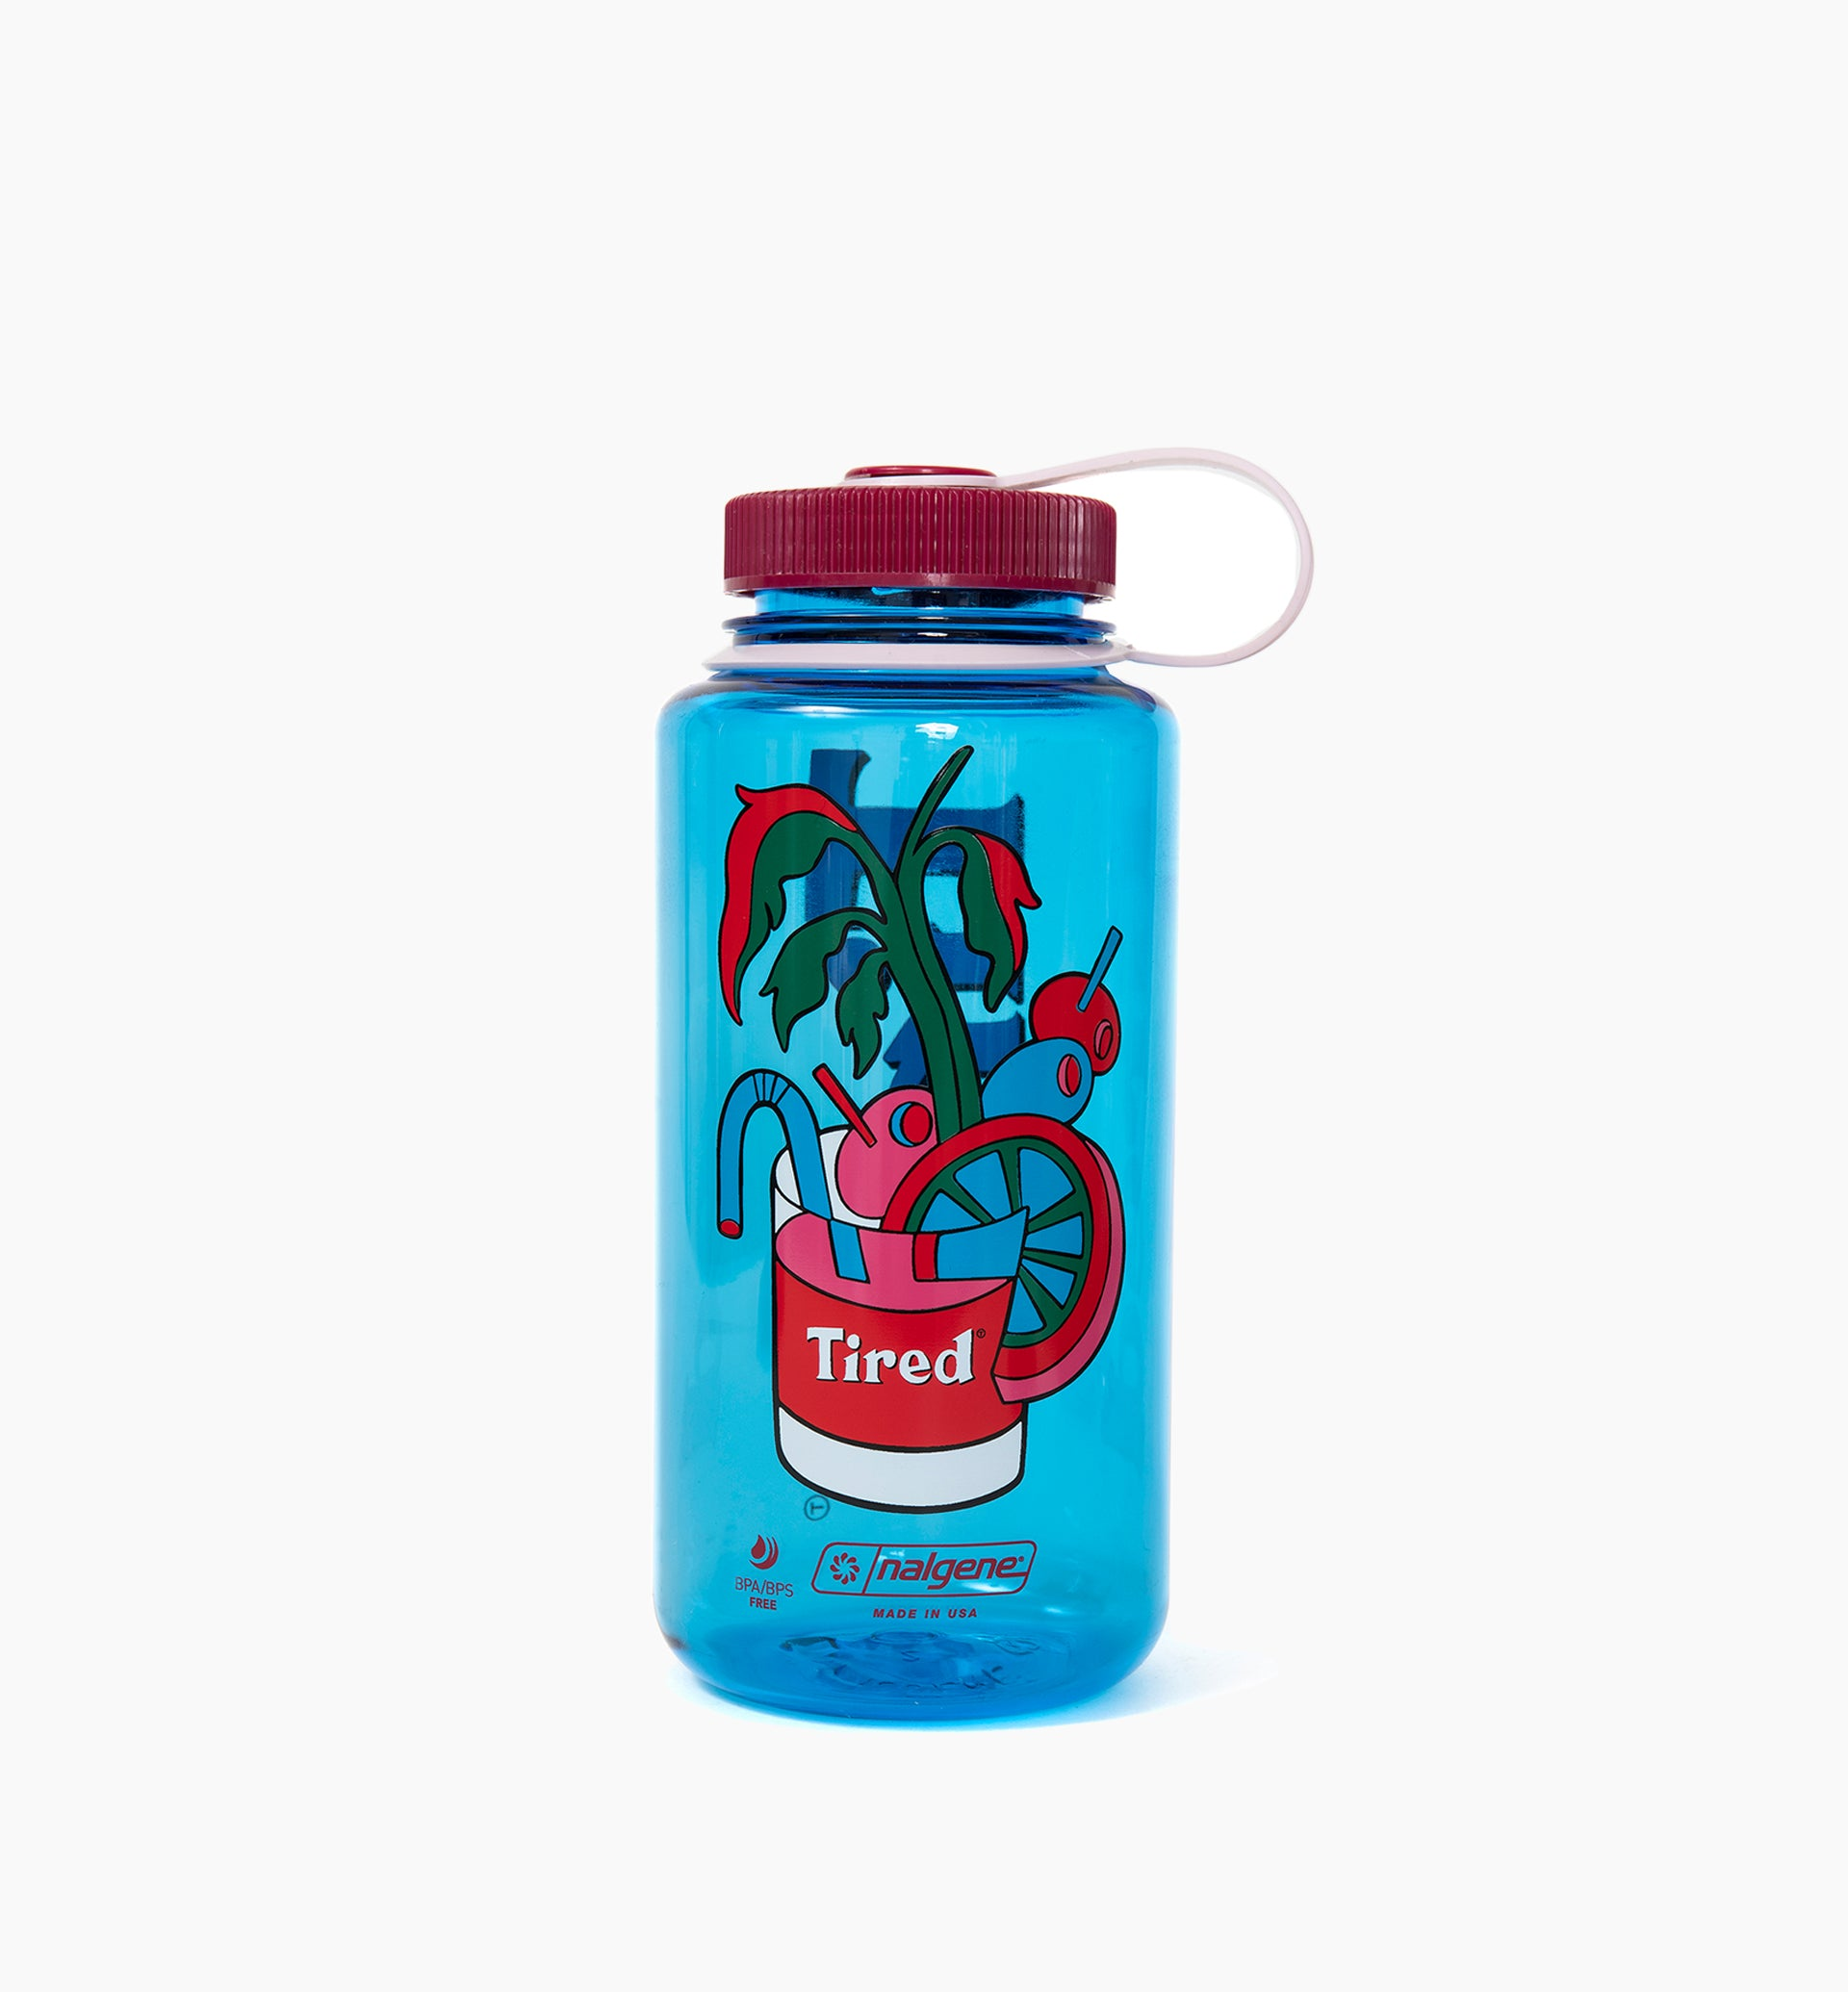 Parra - bloody Tired Nalgene water bottle